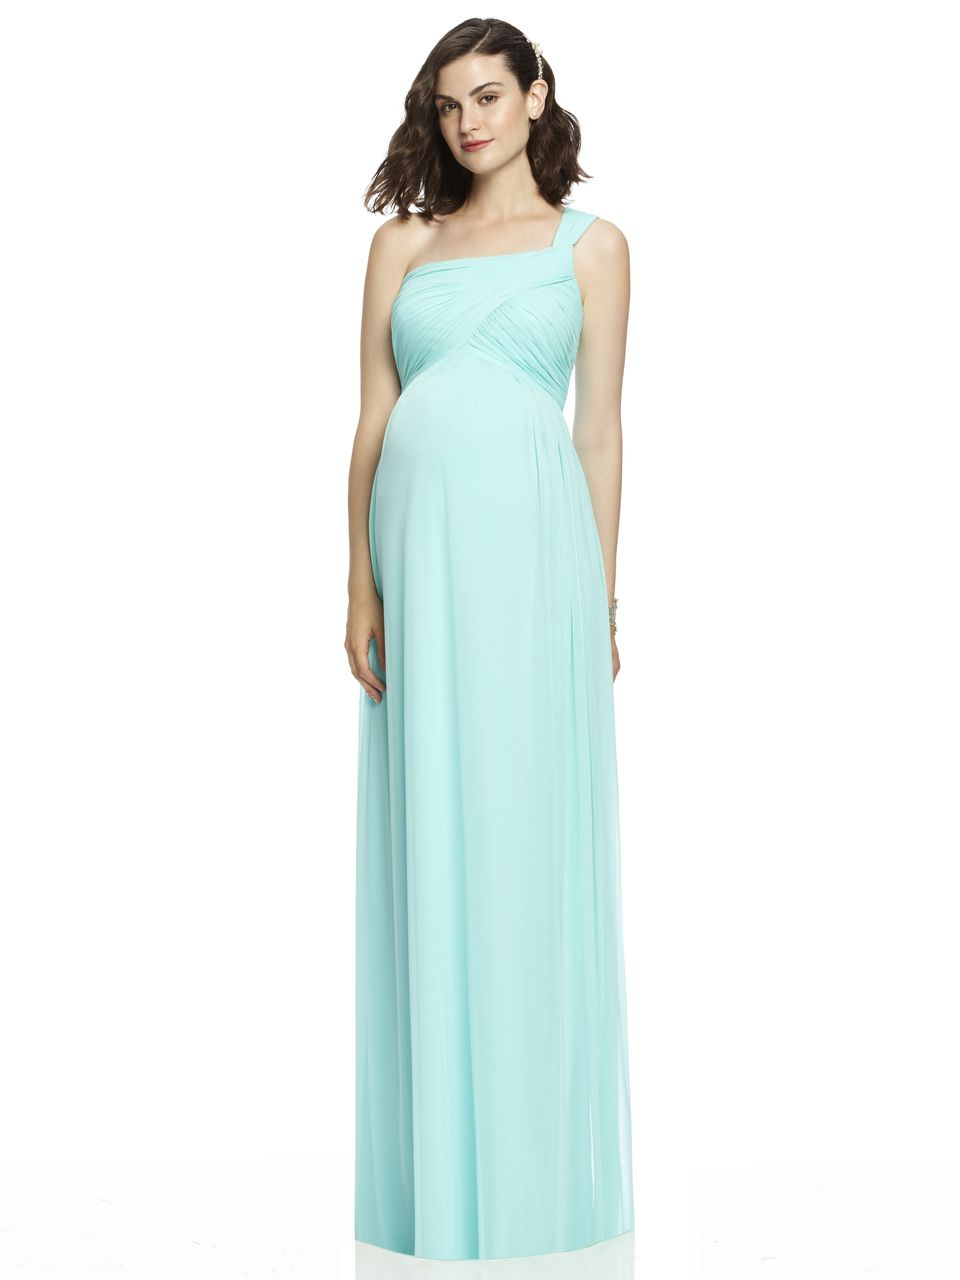 Dessy maternity bridesmaid dress m427 blush bridal blush dessy maternity bridesmaid dress m427 ombrellifo Image collections